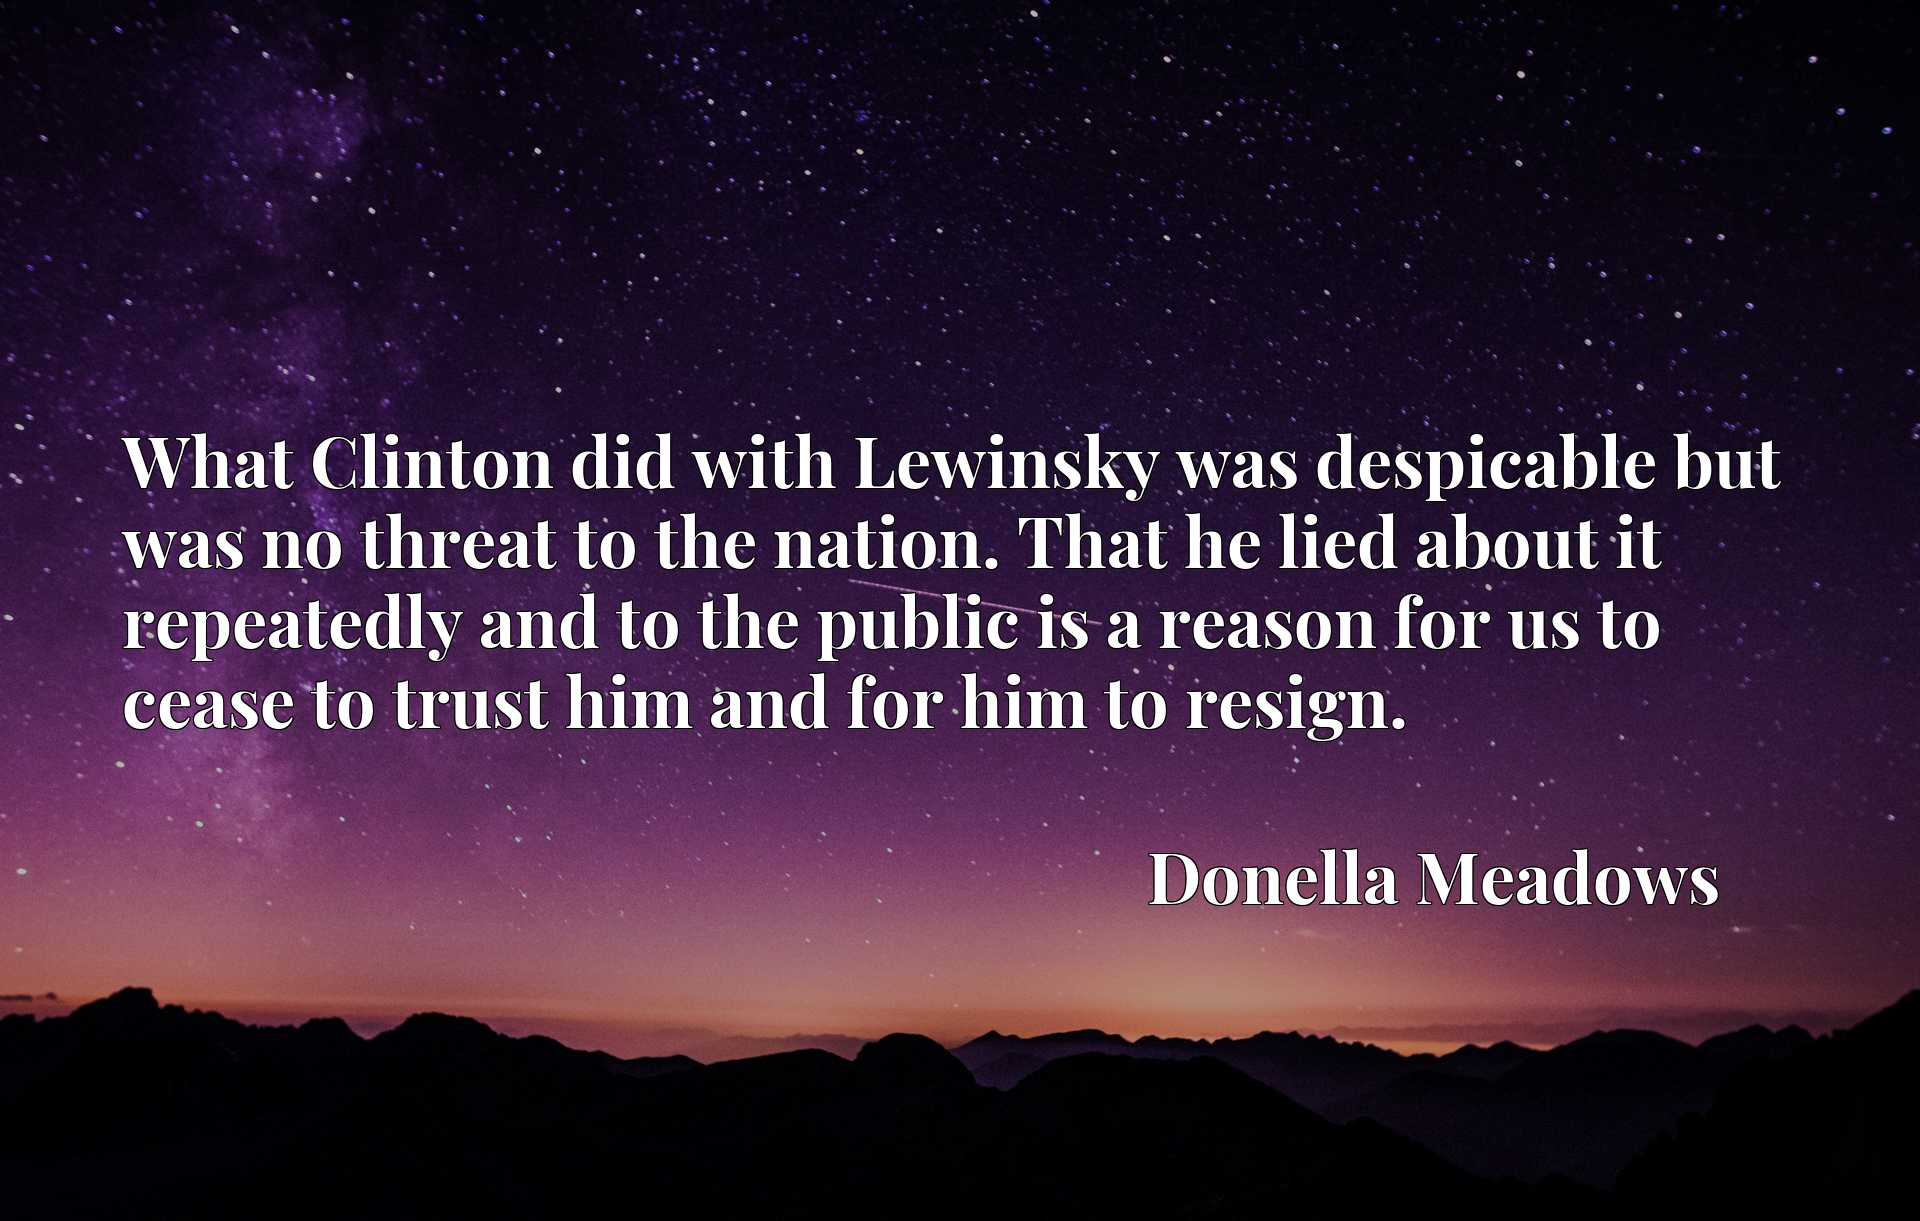 What Clinton did with Lewinsky was despicable but was no threat to the nation. That he lied about it repeatedly and to the public is a reason for us to cease to trust him and for him to resign.